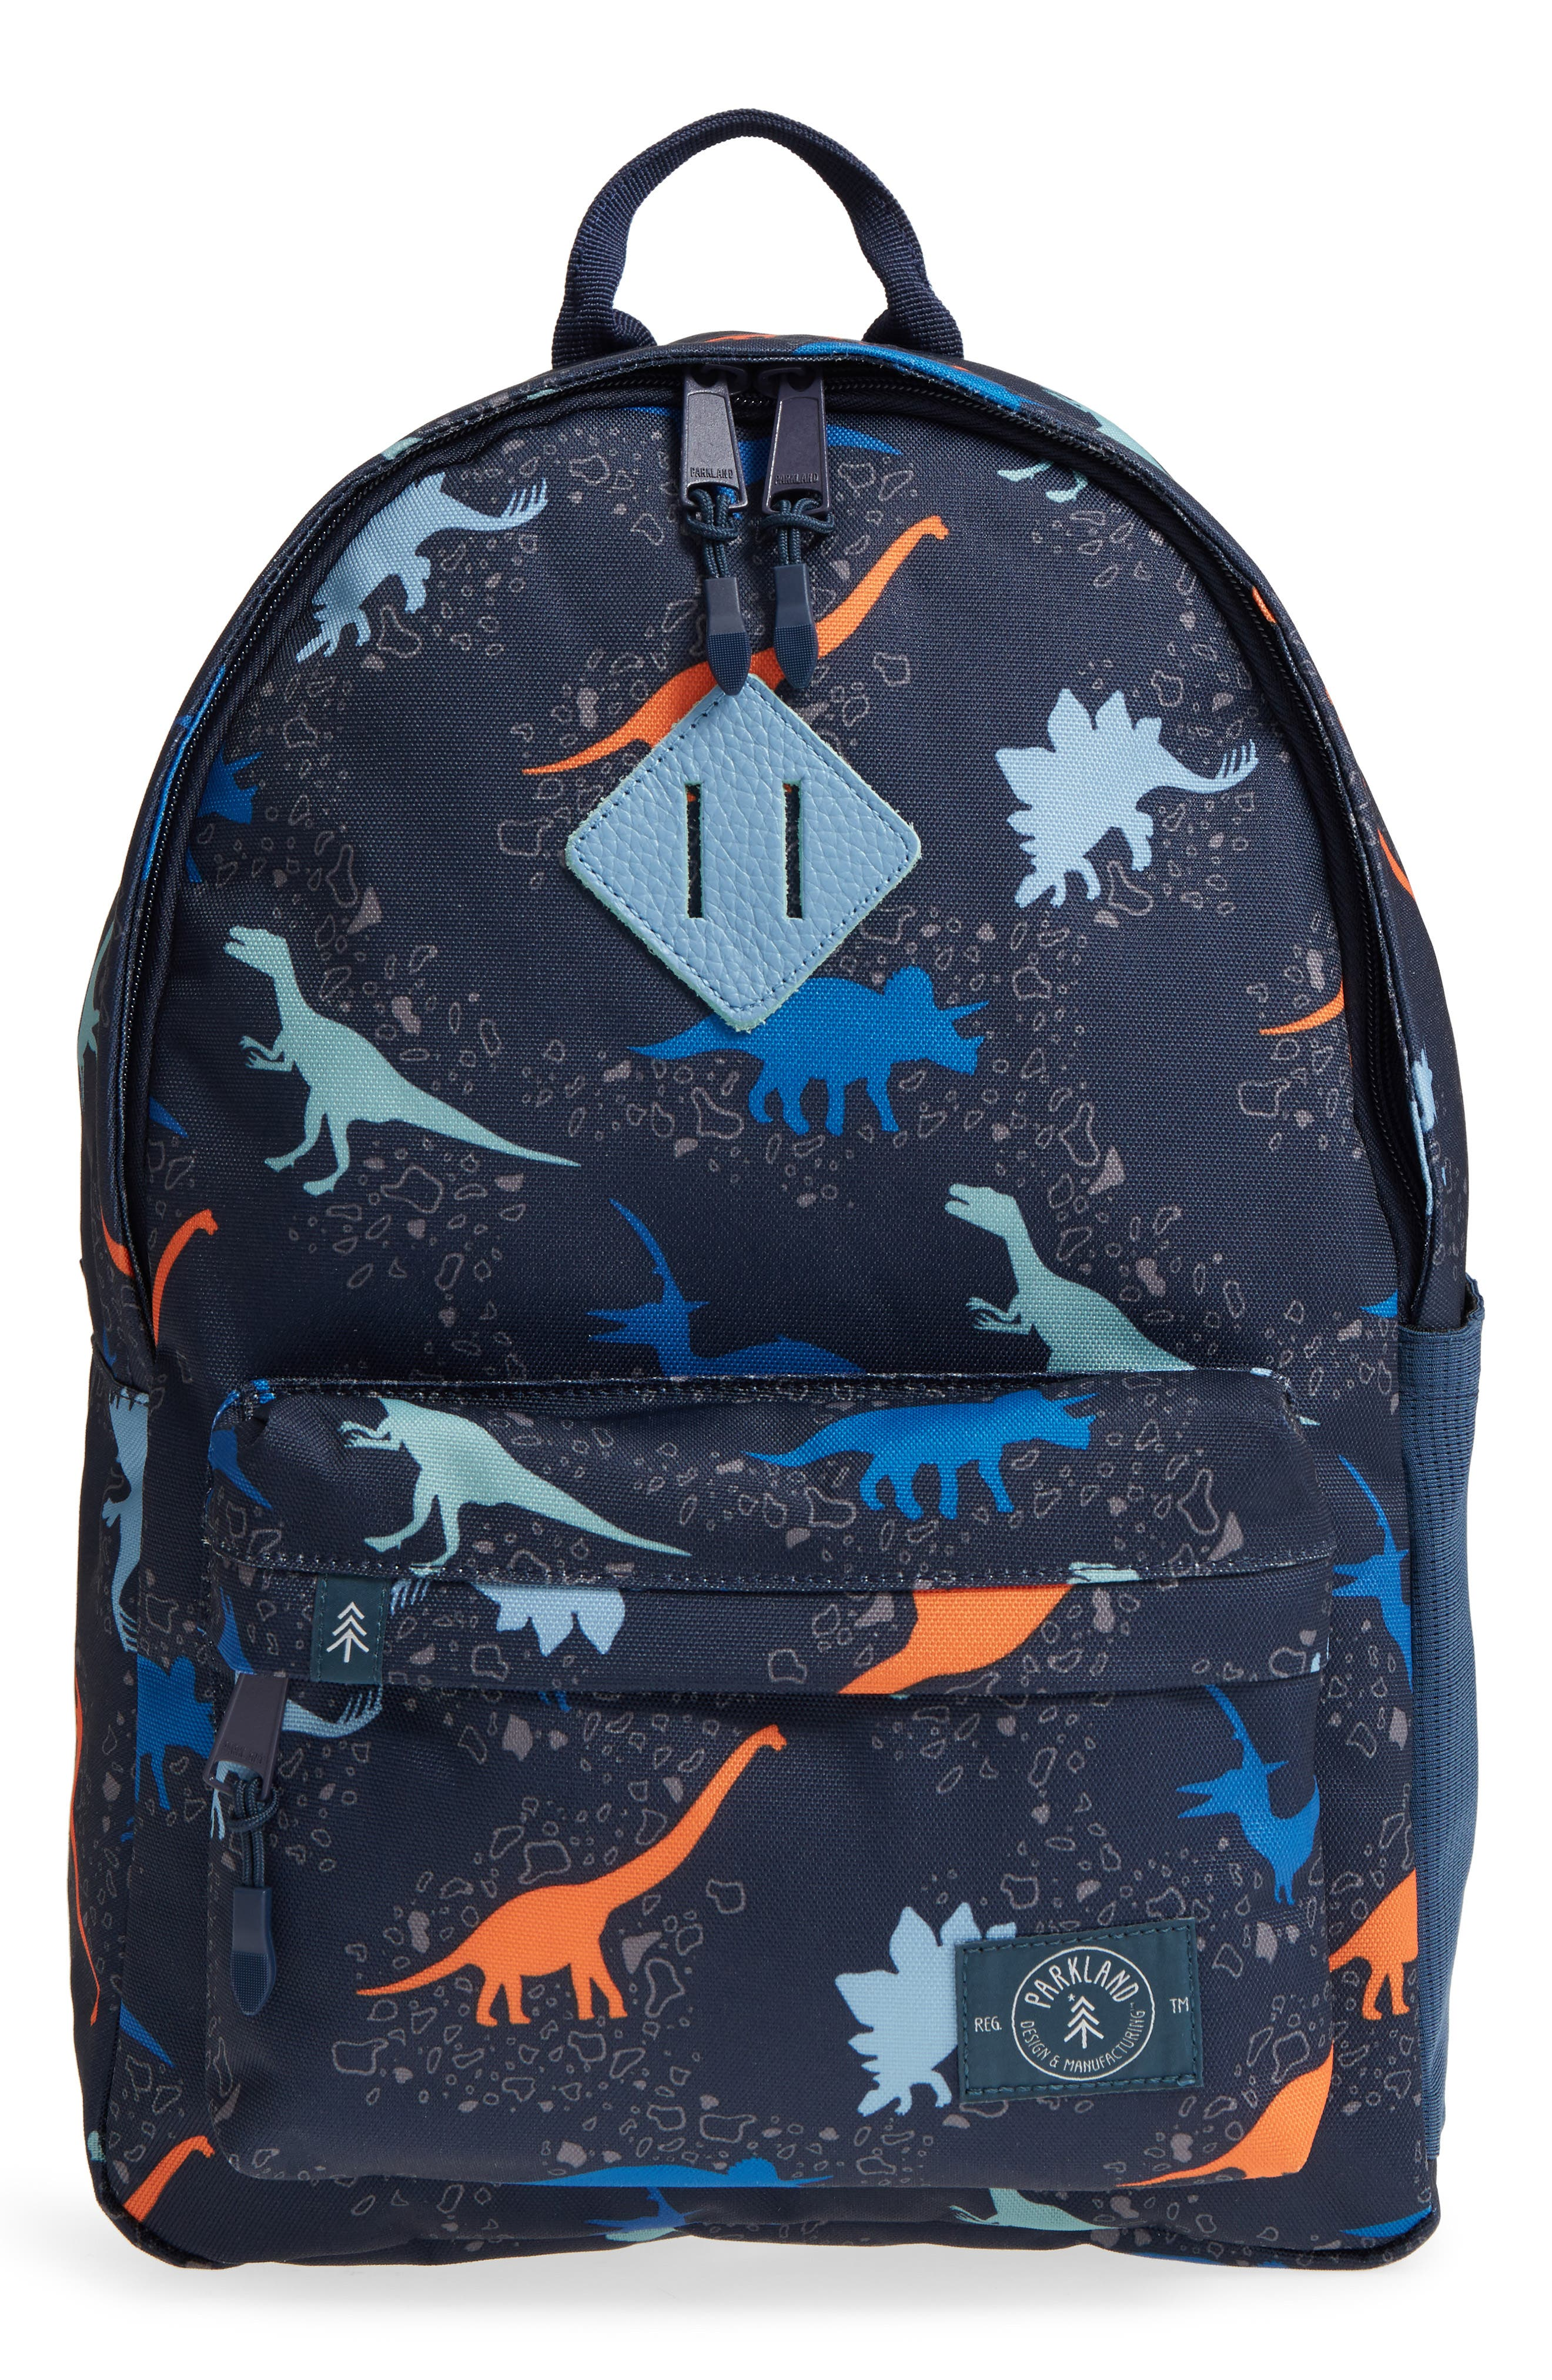 Bayside Print Backpack,                         Main,                         color, 200